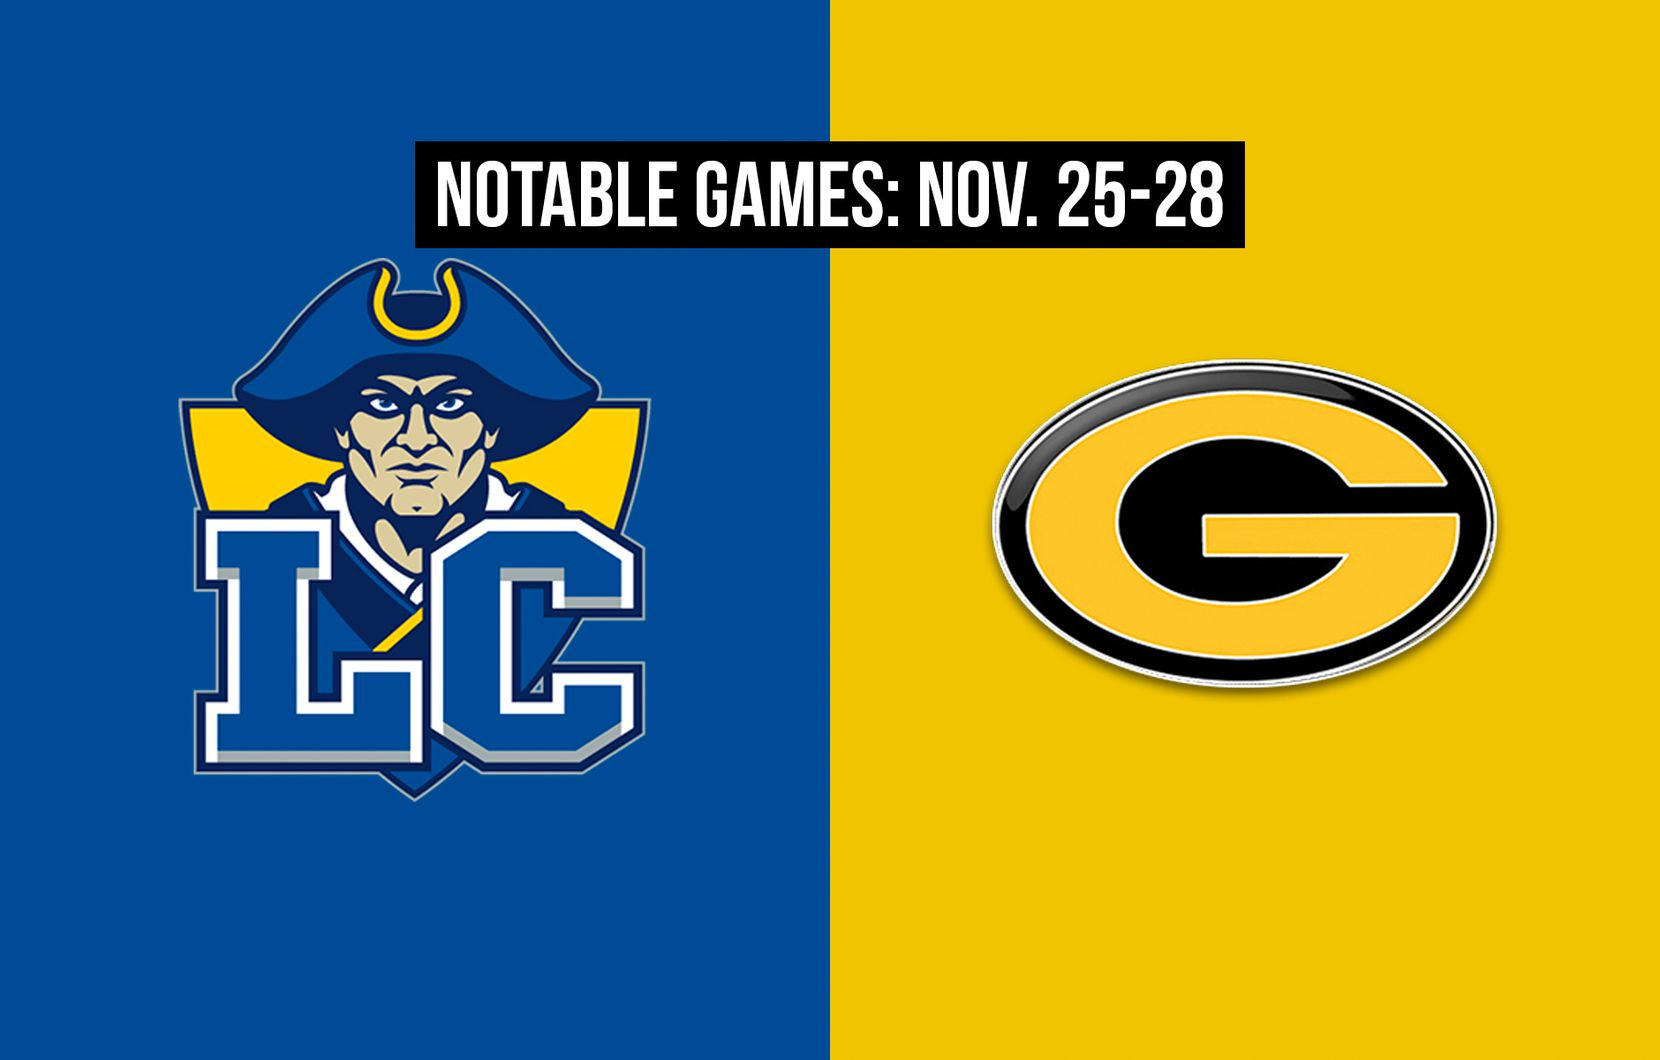 Notable games for the week of Nov. 25-28 of the 2020 season: Garland Lakeview Centennial vs. Garland.